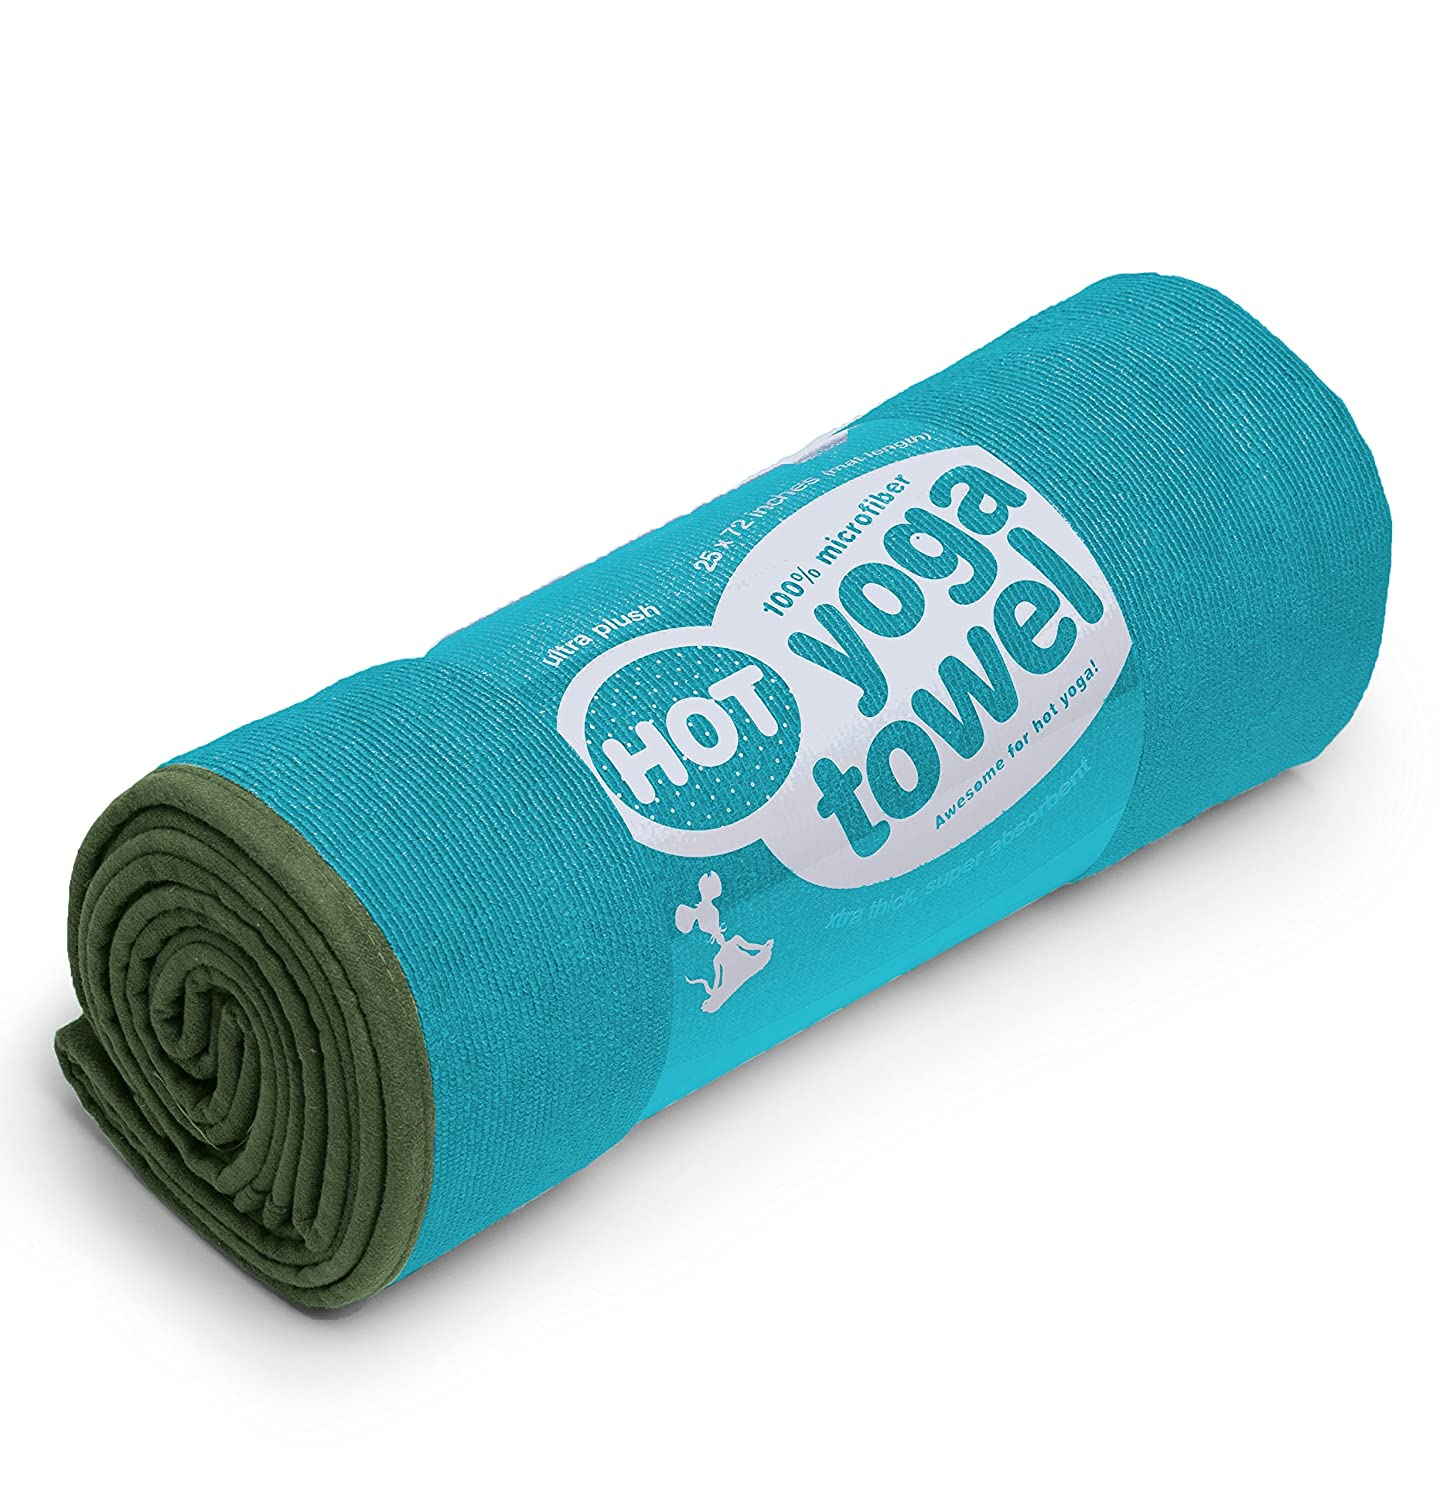 YogaRat HOT YOGA TOWEL: 100/% durable to lay on top of your yoga mat thick super-absorbent microfiber 26x72, 25 x 72 or 24 x 68 for better grip and moisture absorption Offered in multiple mat-length sizes 16 x 25, sold and a hand-size towel